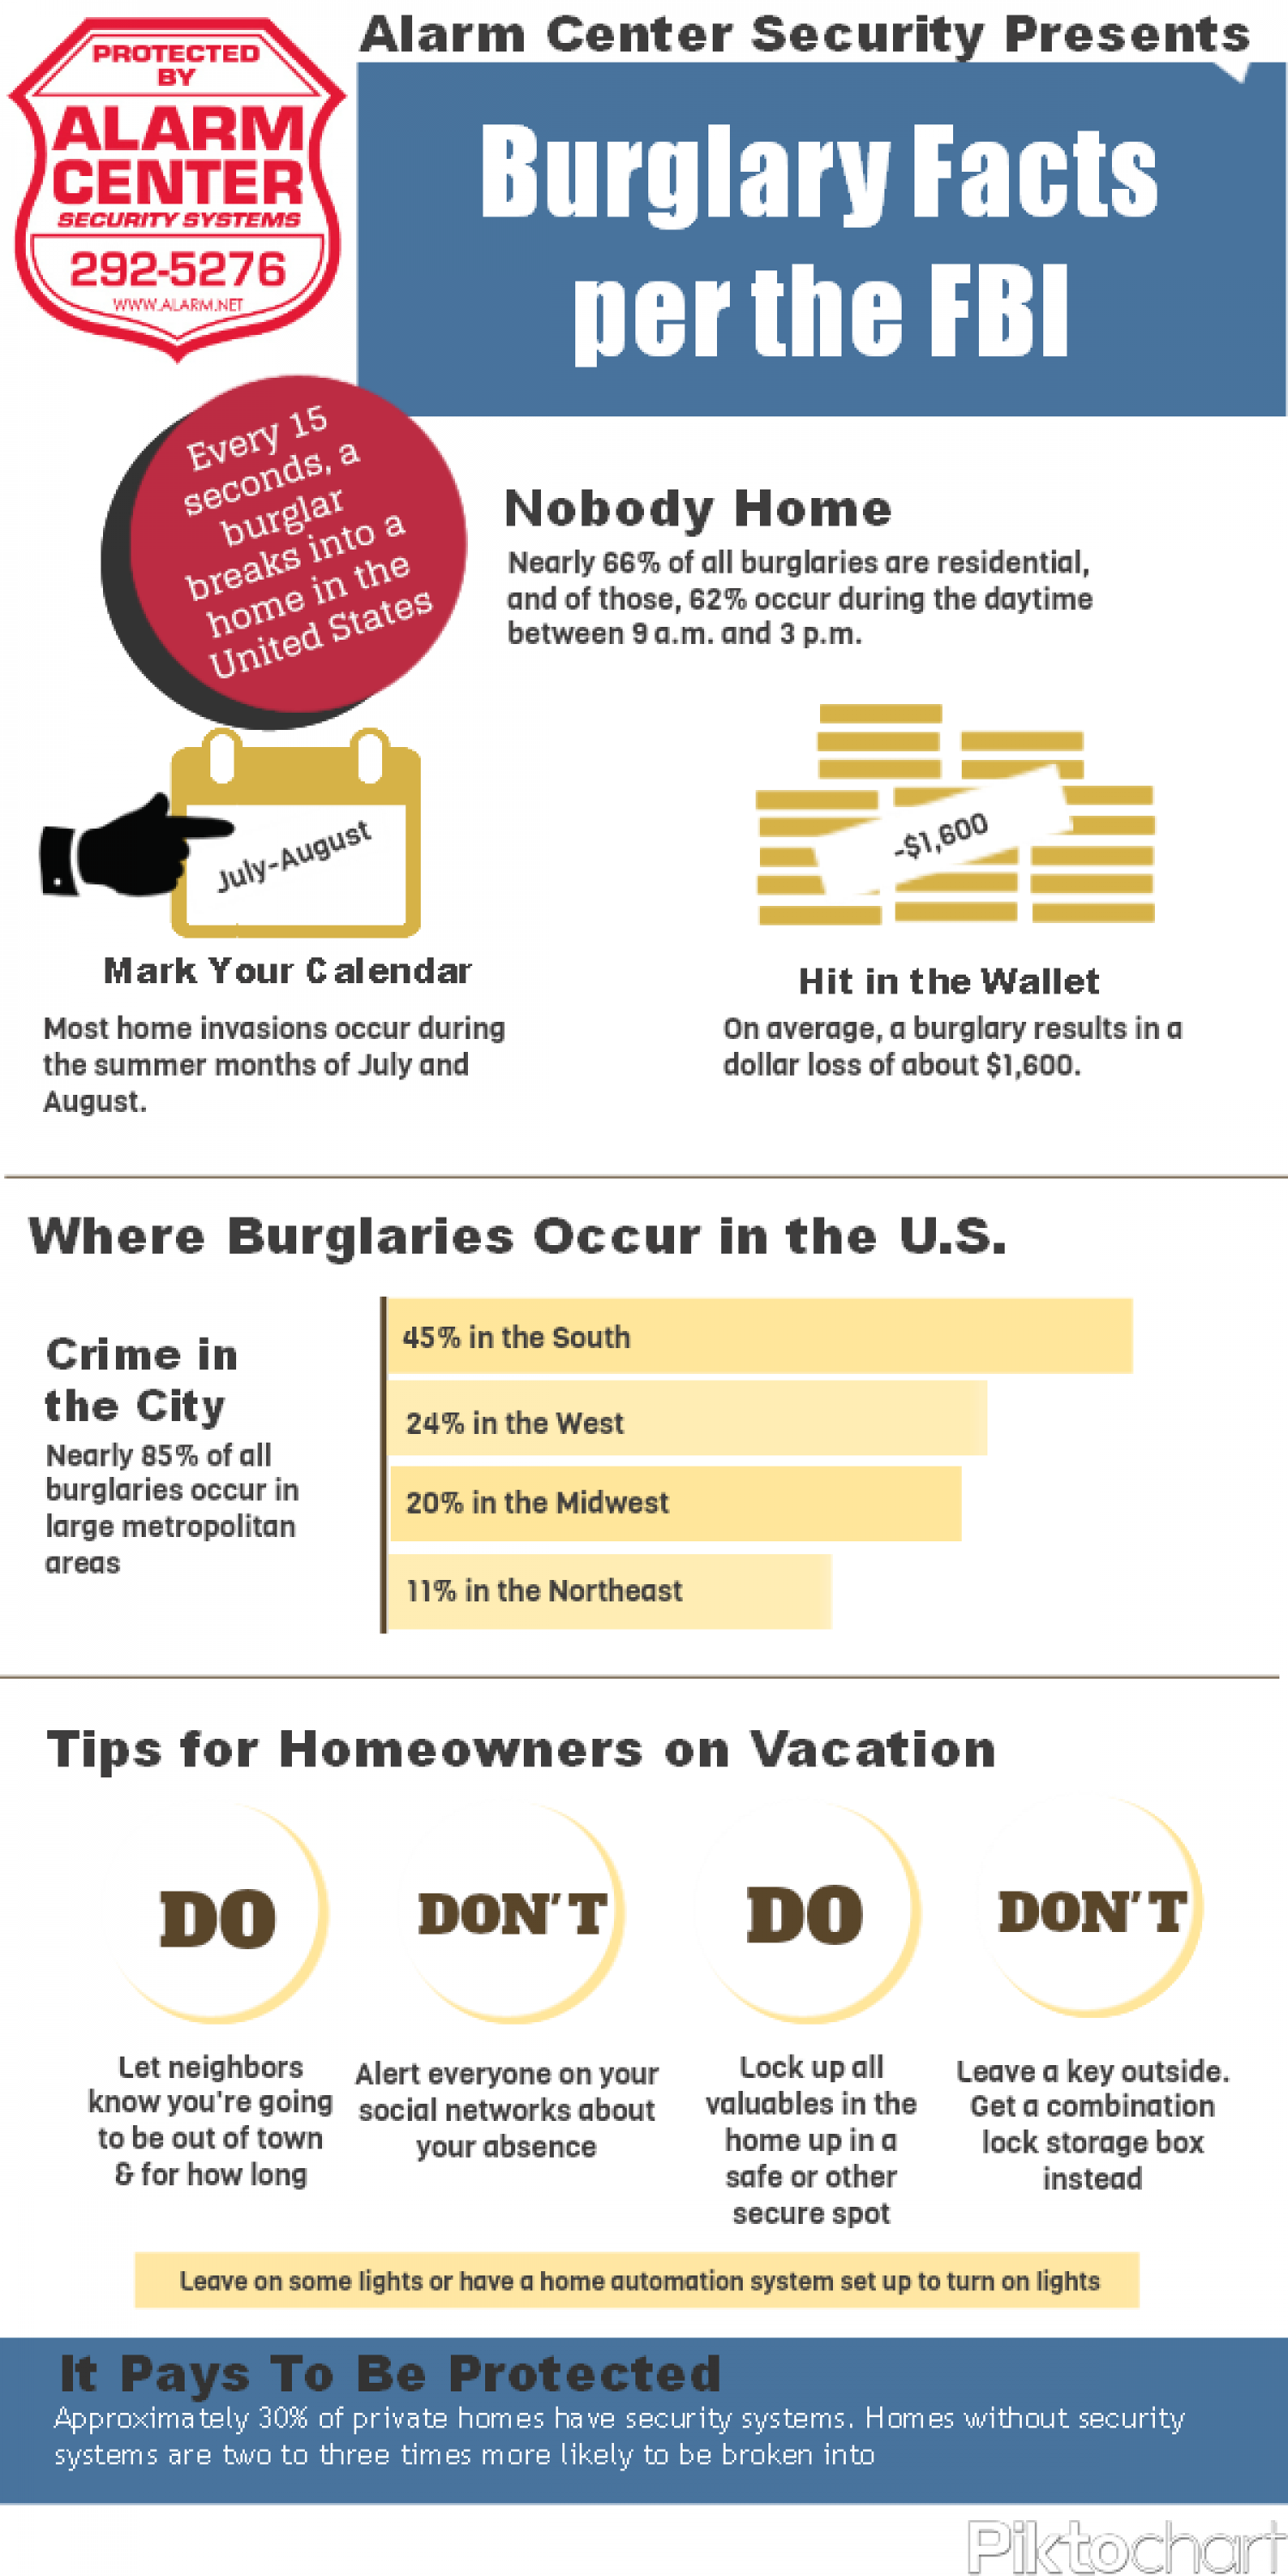 Burglary Facts Infographic